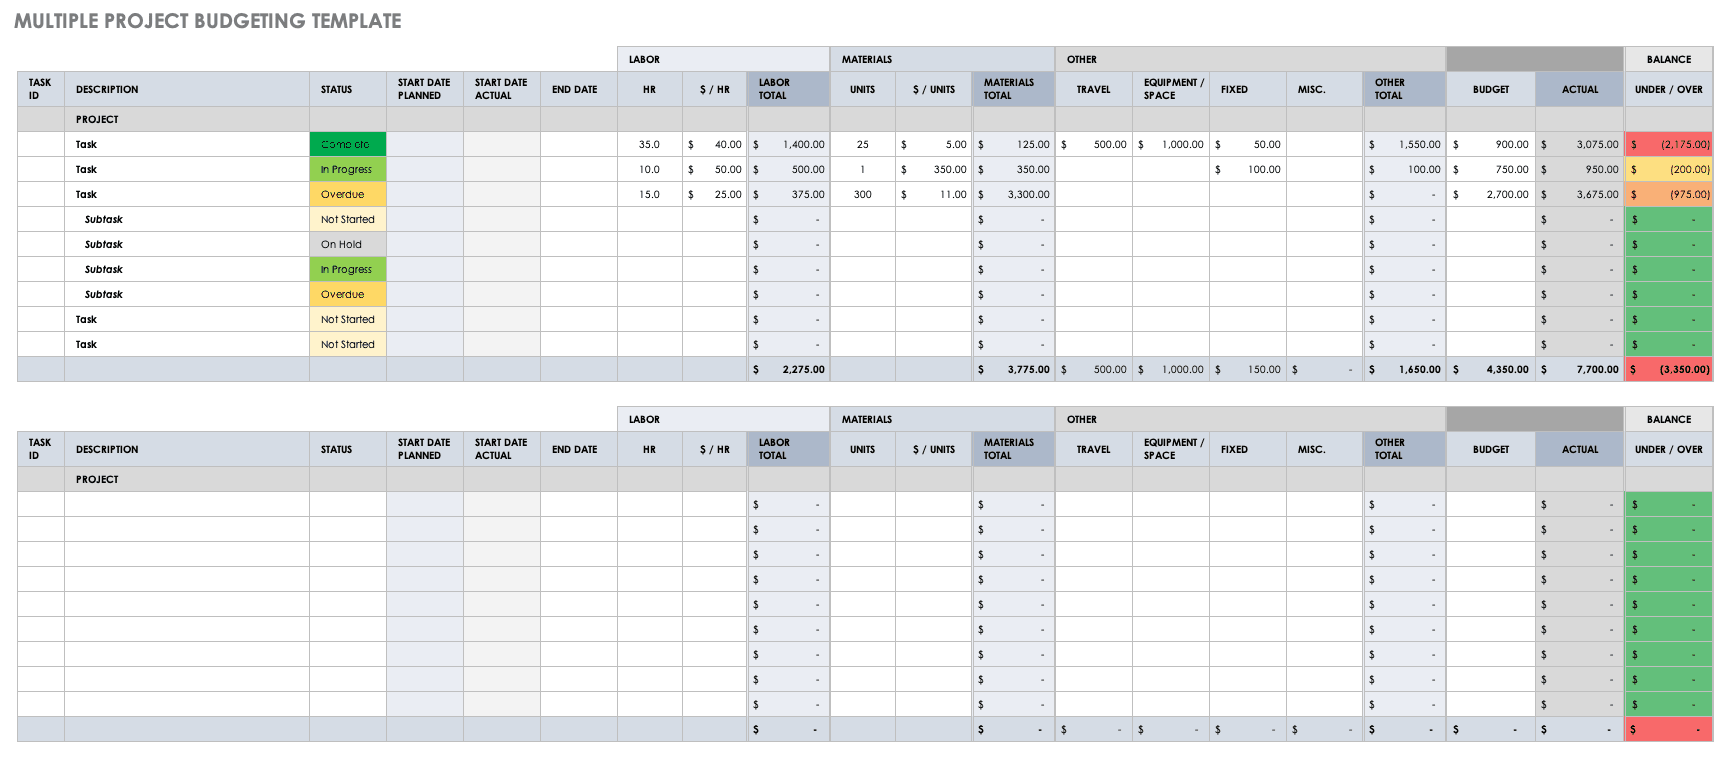 Multiple Project Budgeting Template